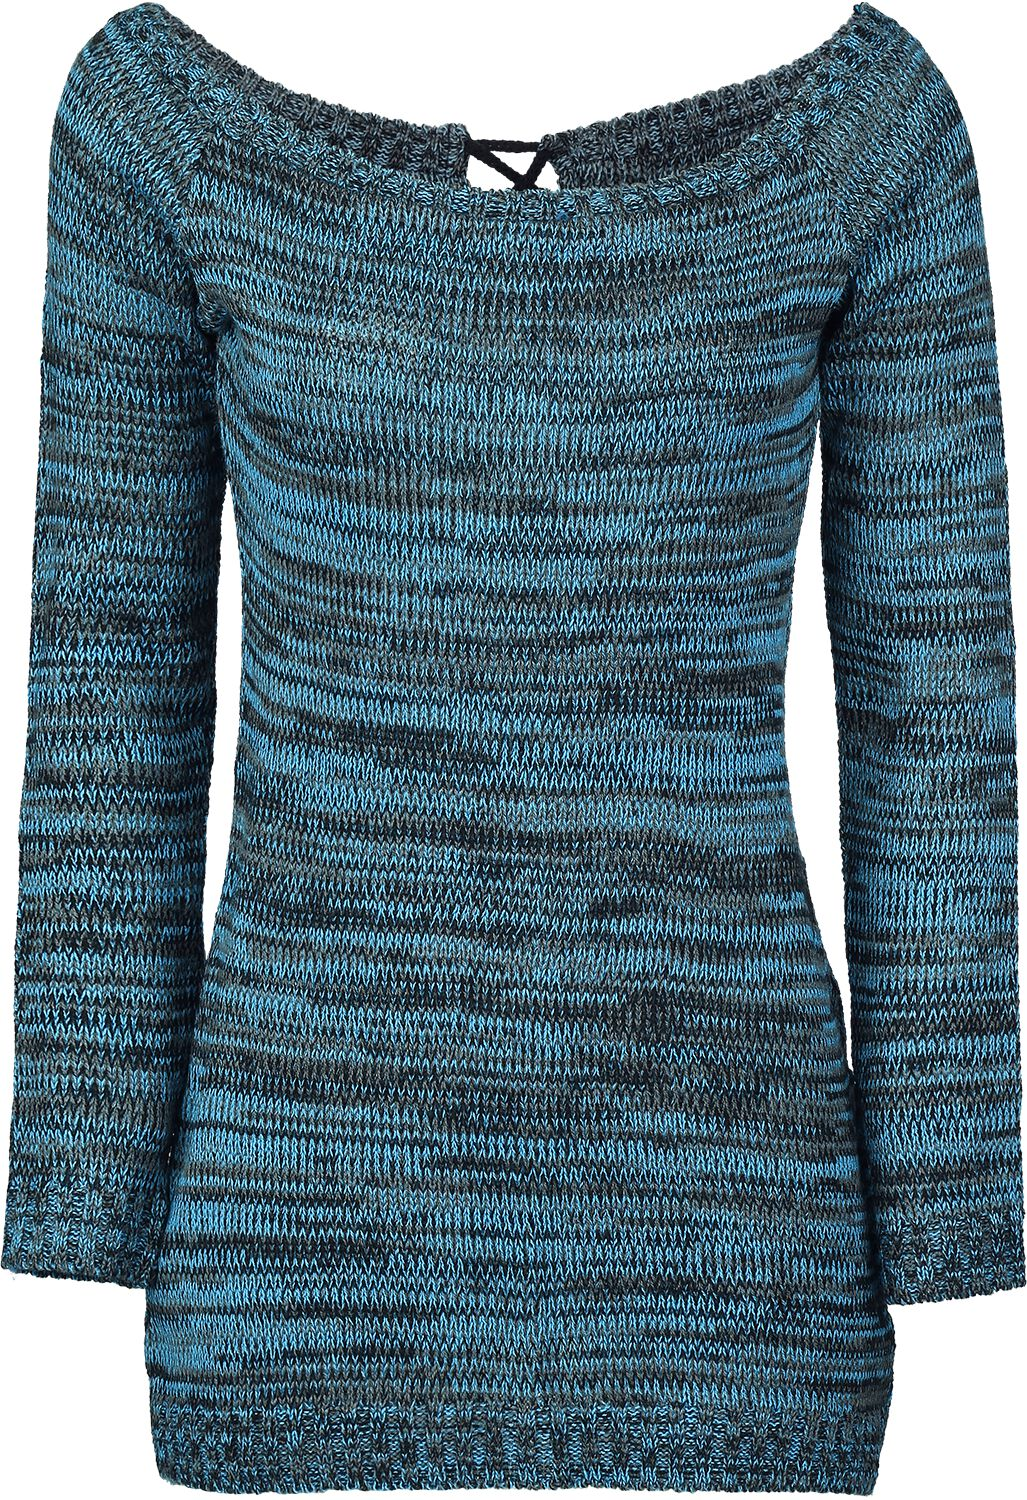 Image of Innocent Hena Pullover donna turchese